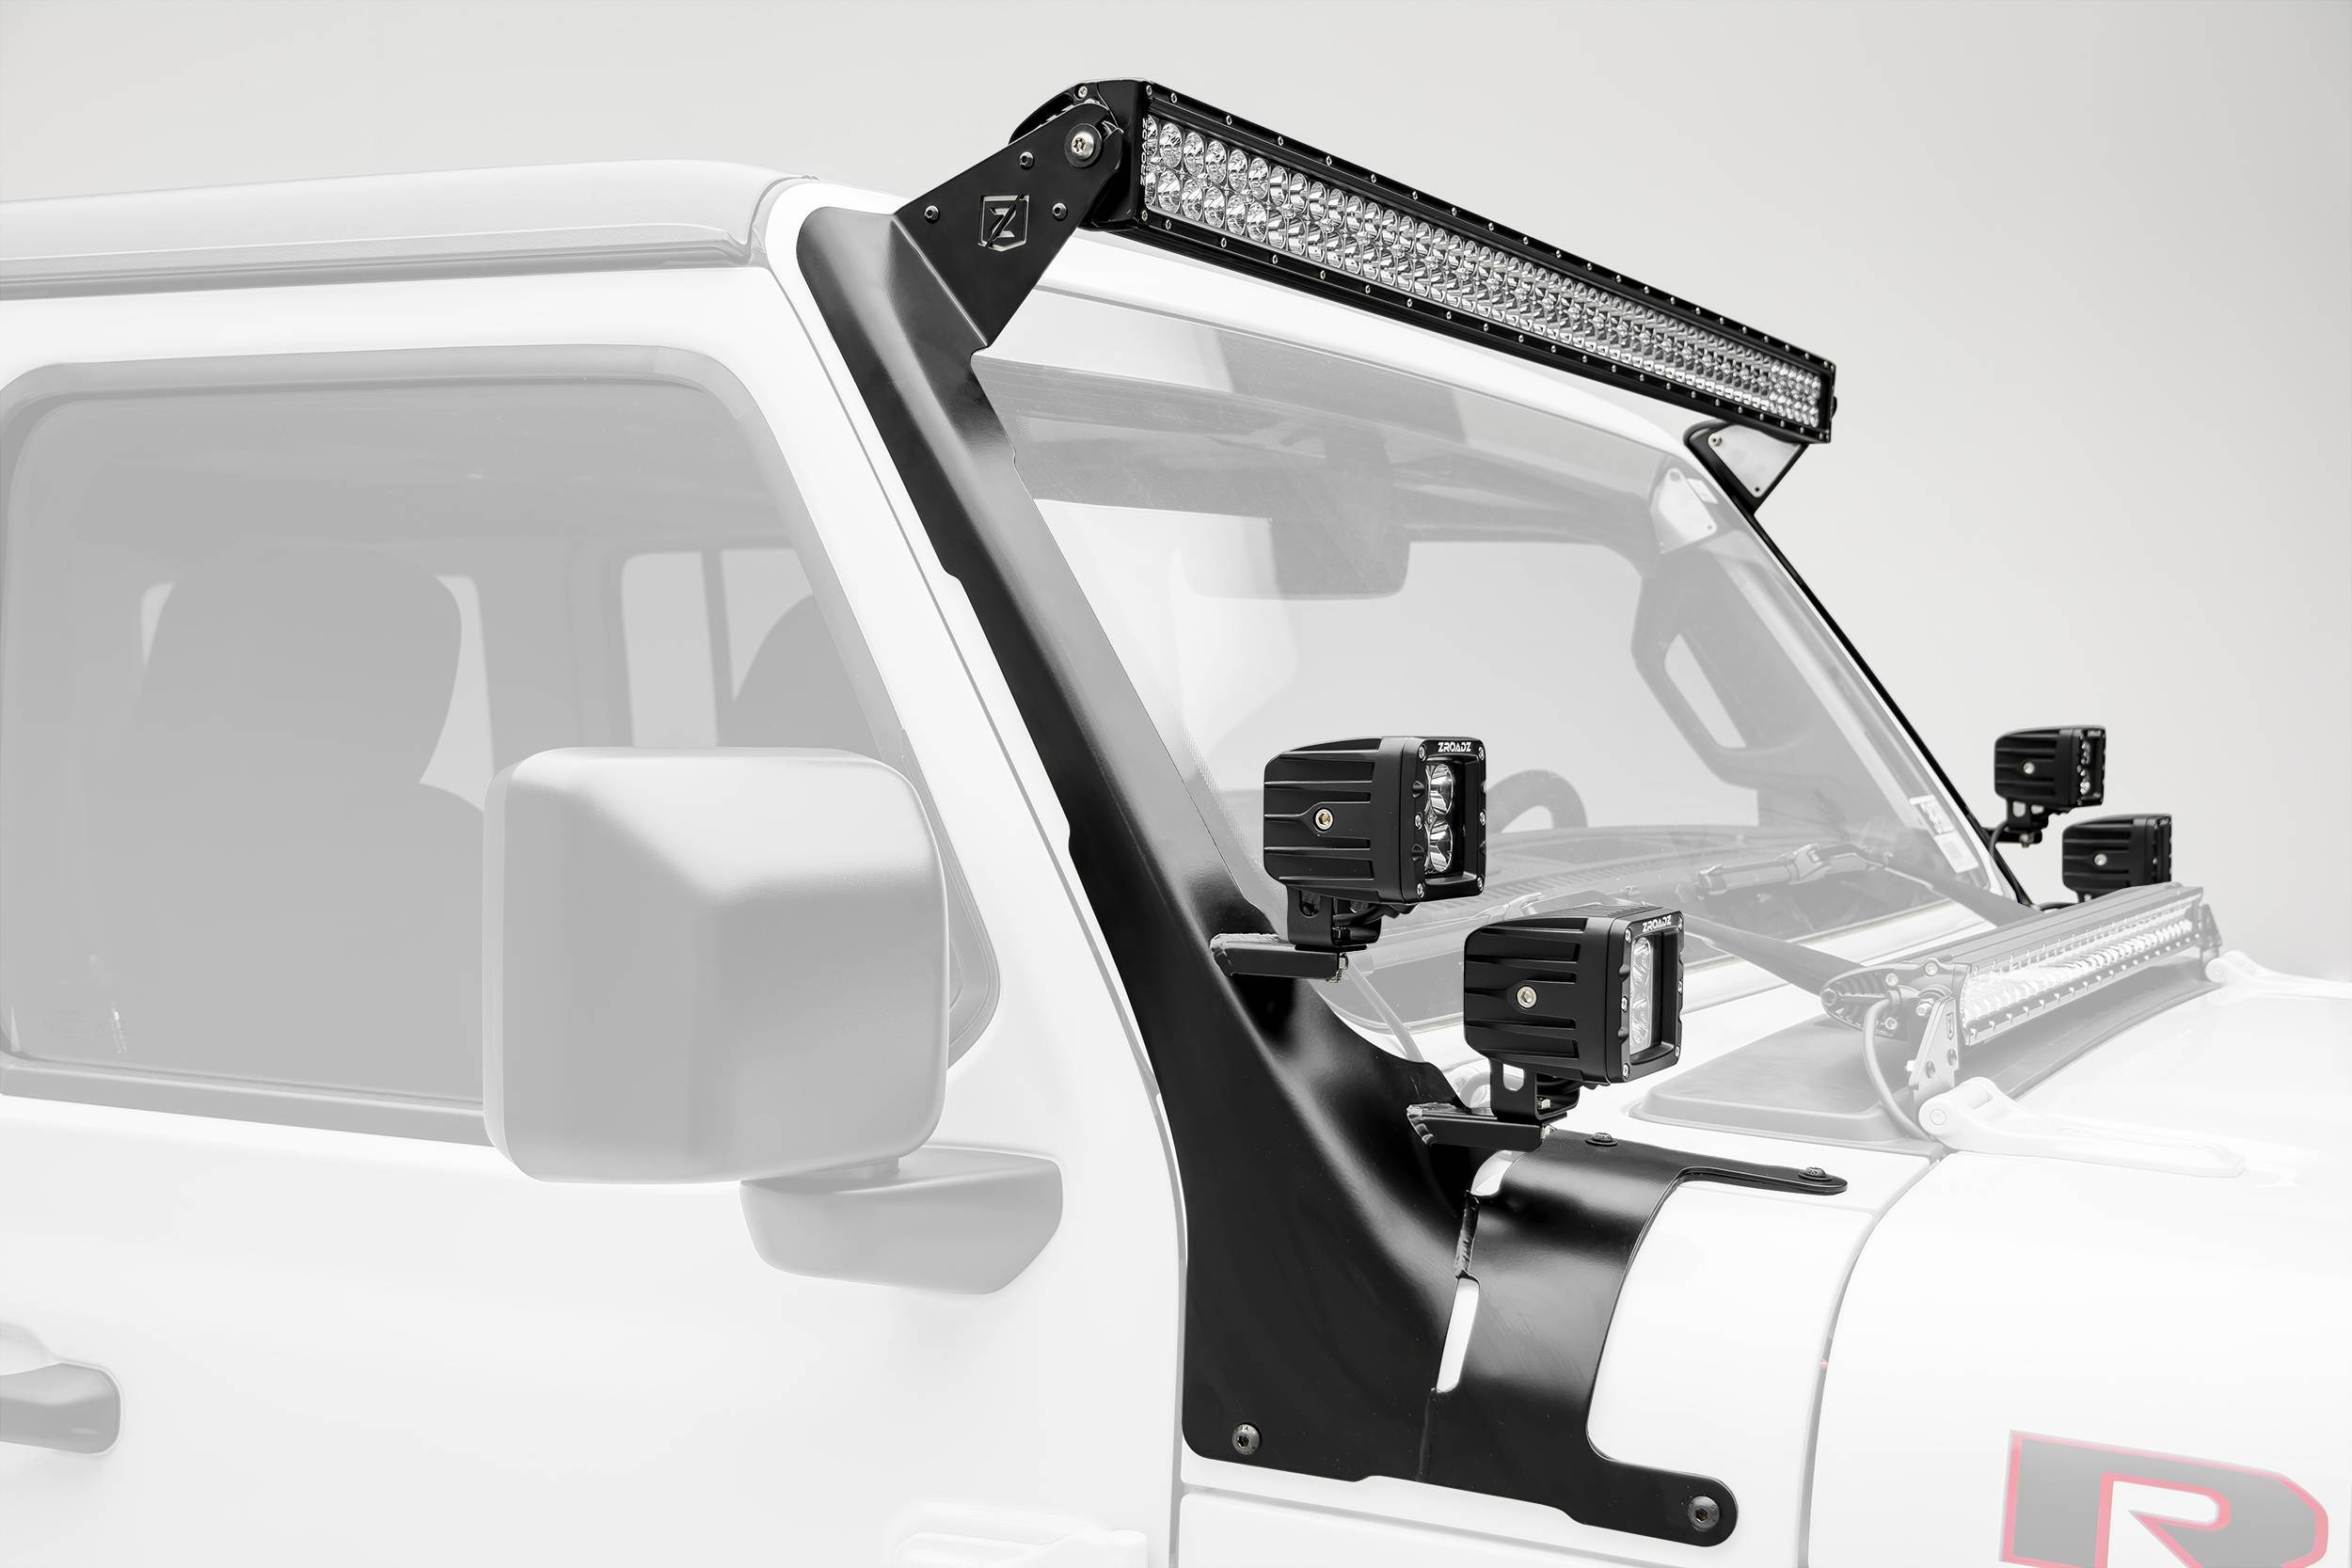 ZROADZ OFF ROAD PRODUCTS - Jeep JL, Gladiator Front Roof LED Kit with (1) 50 Inch LED Straight Double Row Light Bar and (4) 3 Inch LED Pod Lights - PN #Z374831-KIT4